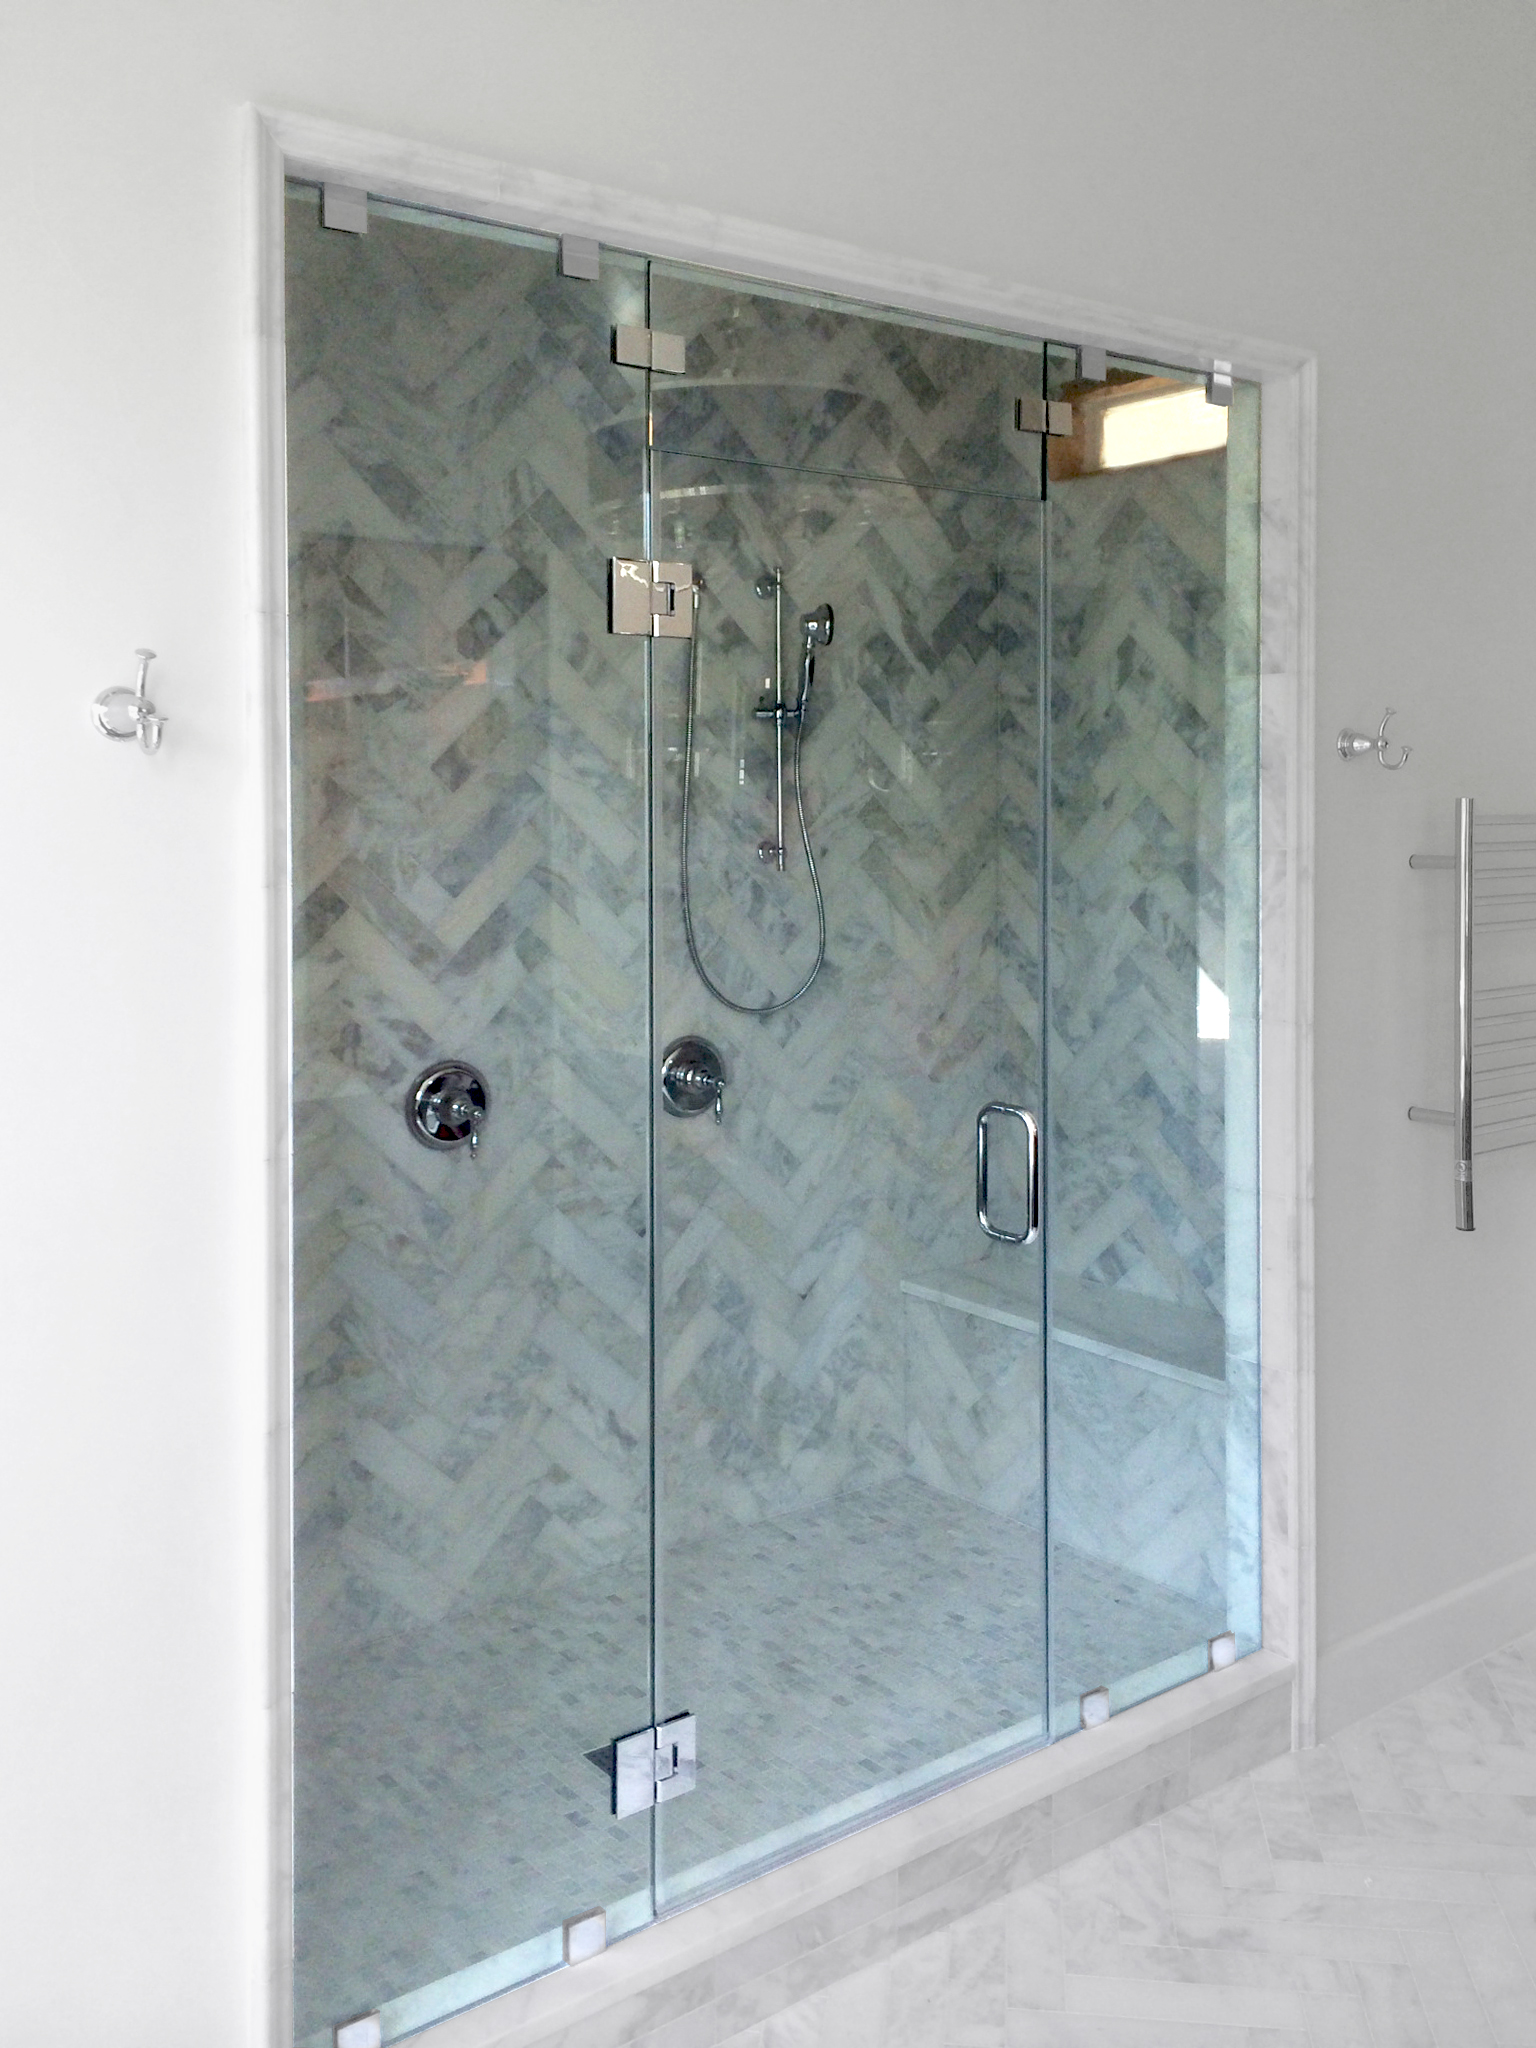 #14.  An elegant example of a three-piece inline steam shower with transom.